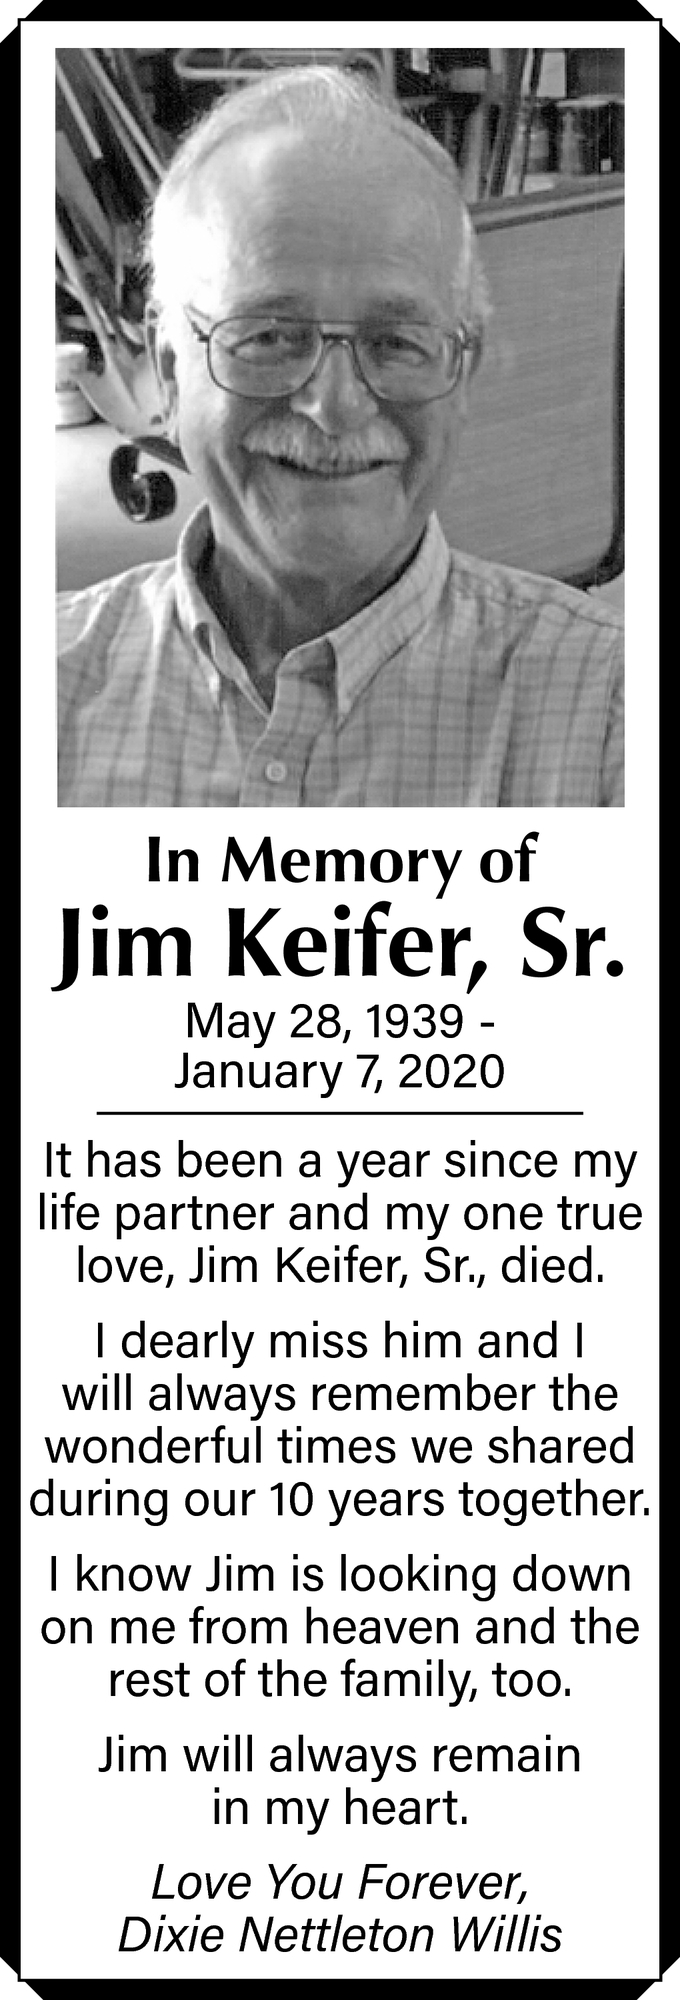 In Memory Of Jim Keifer, Sr